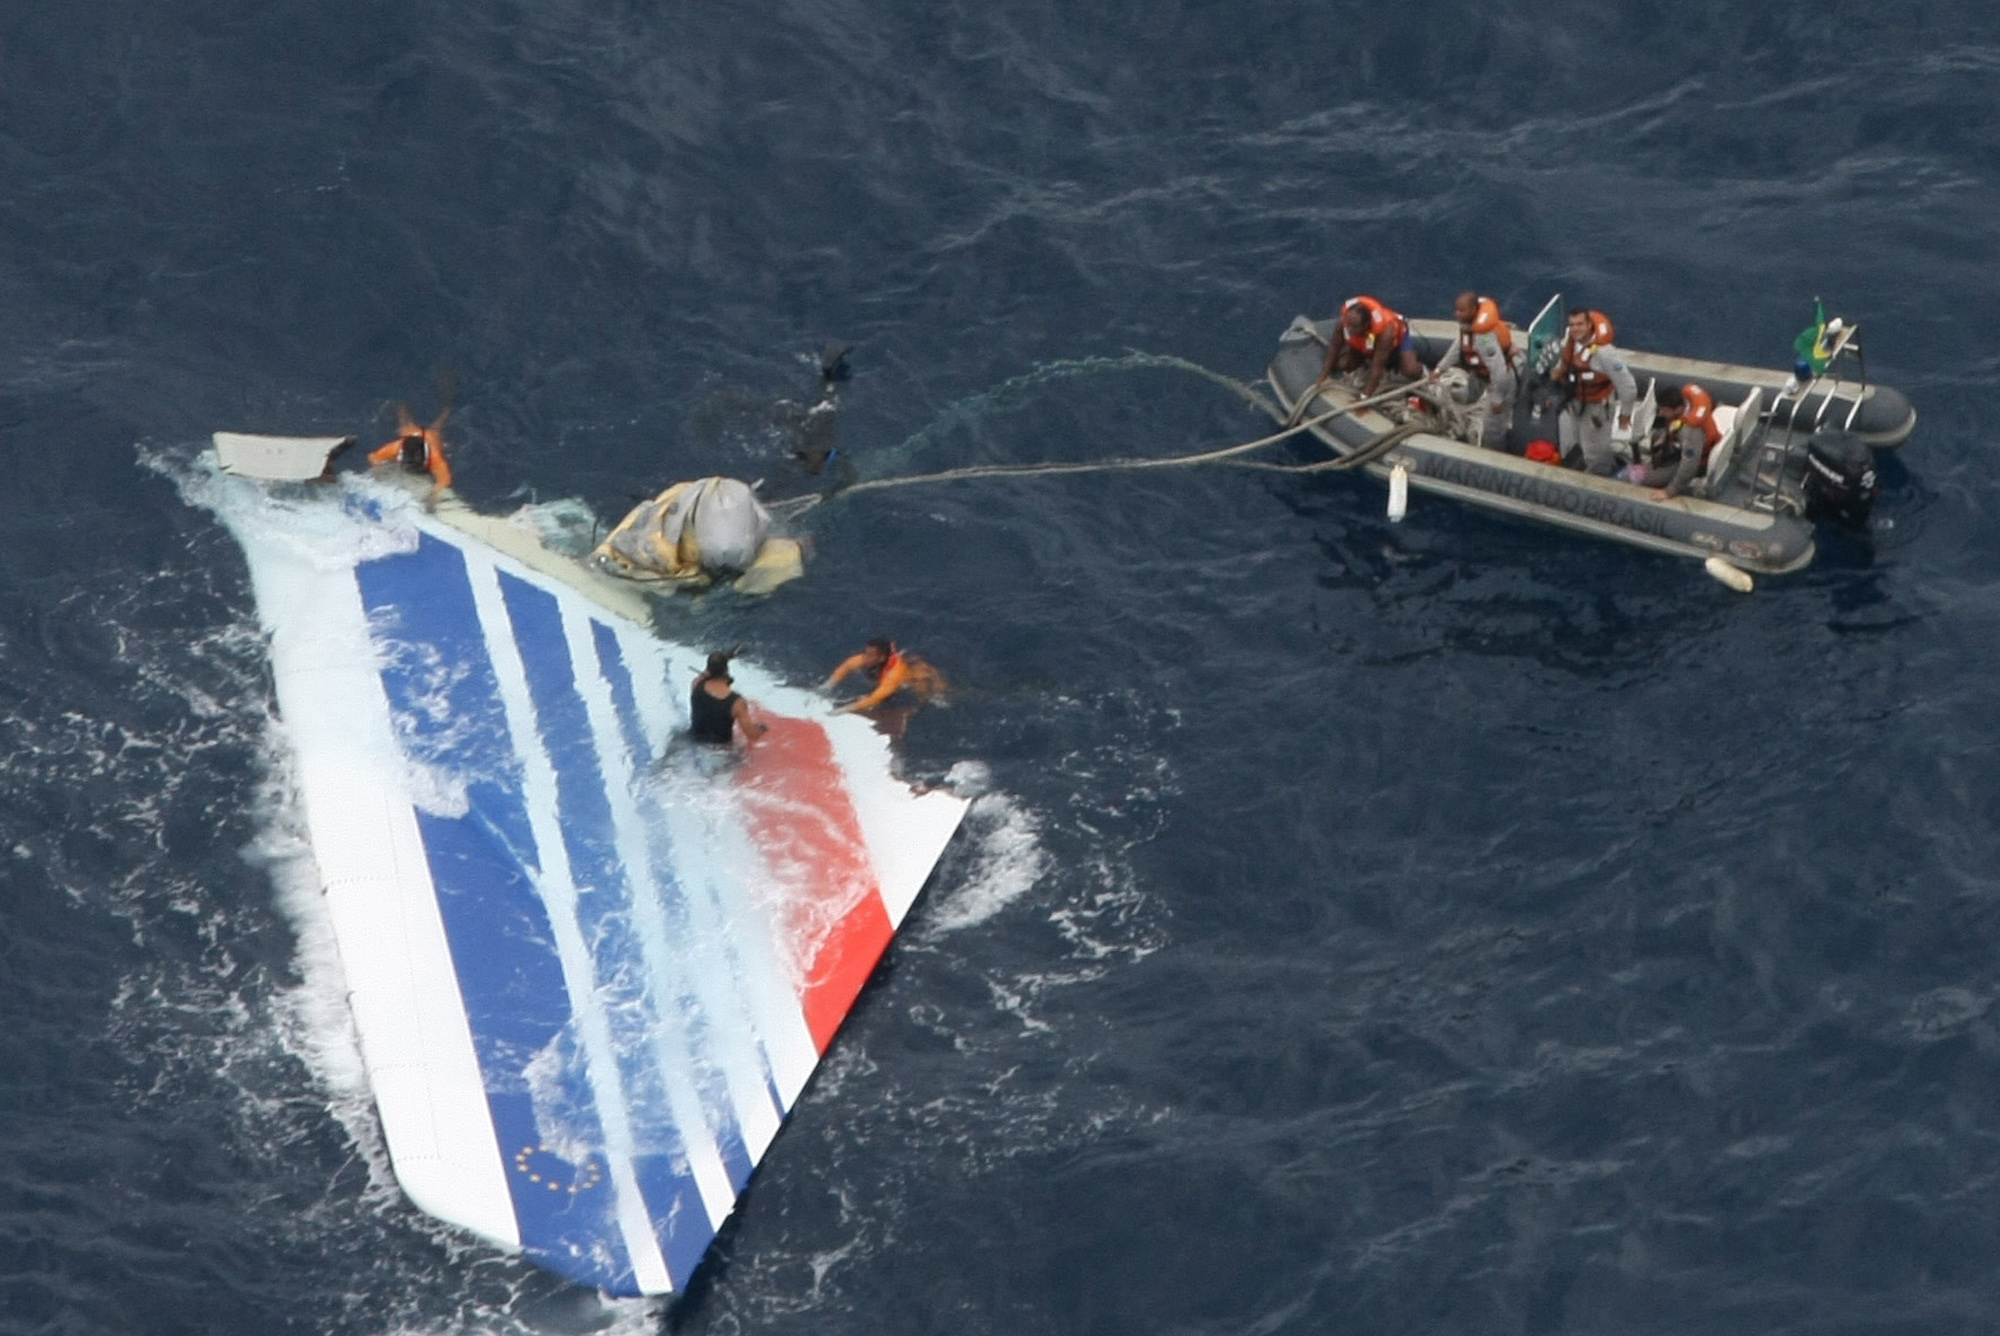 Report on 2009 Air France crash cites chaos in cockpit - HoustonChronicle.com